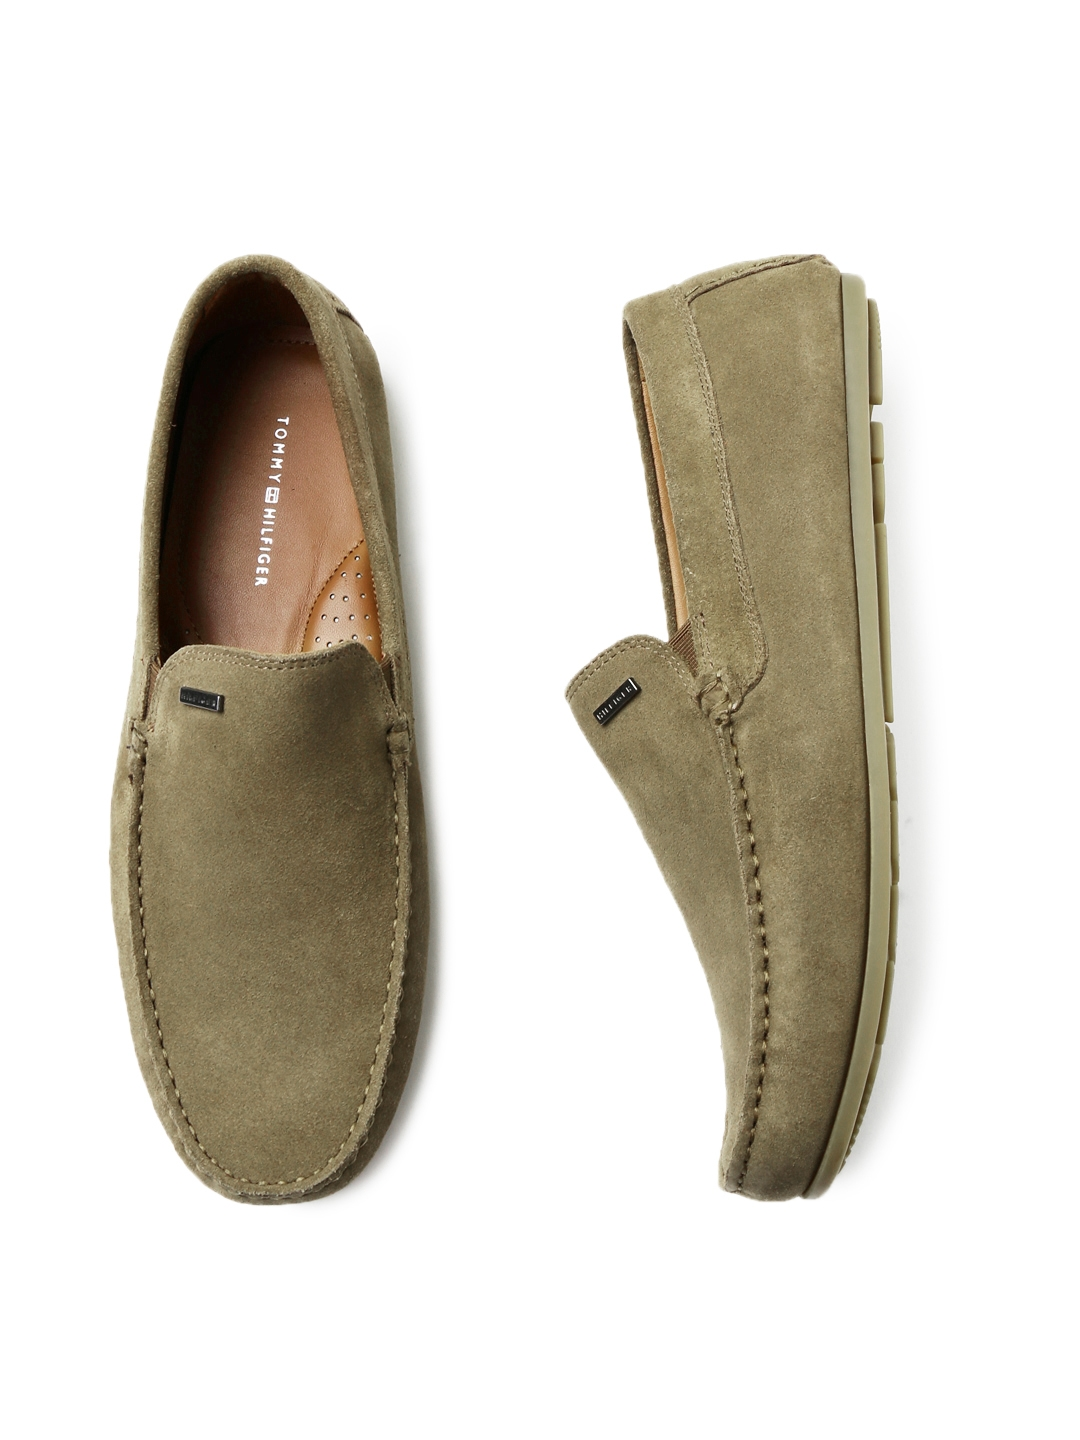 5f5236884d1d Tommy Hilfiger Men Brown Suede Loafers. This product is already at its best  price